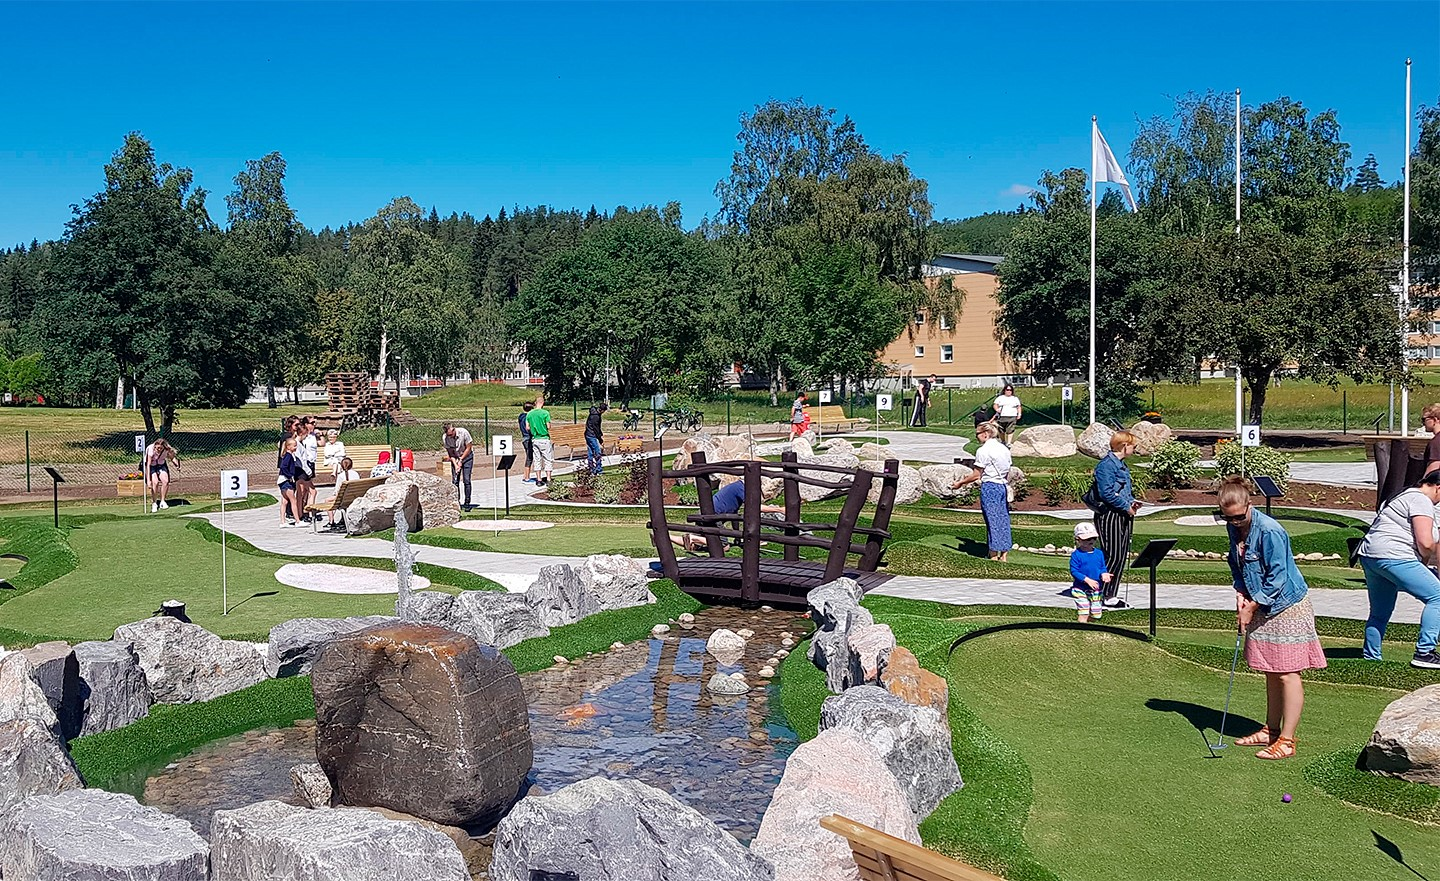 Happy Adventure Golf players at Sundsvall BGK